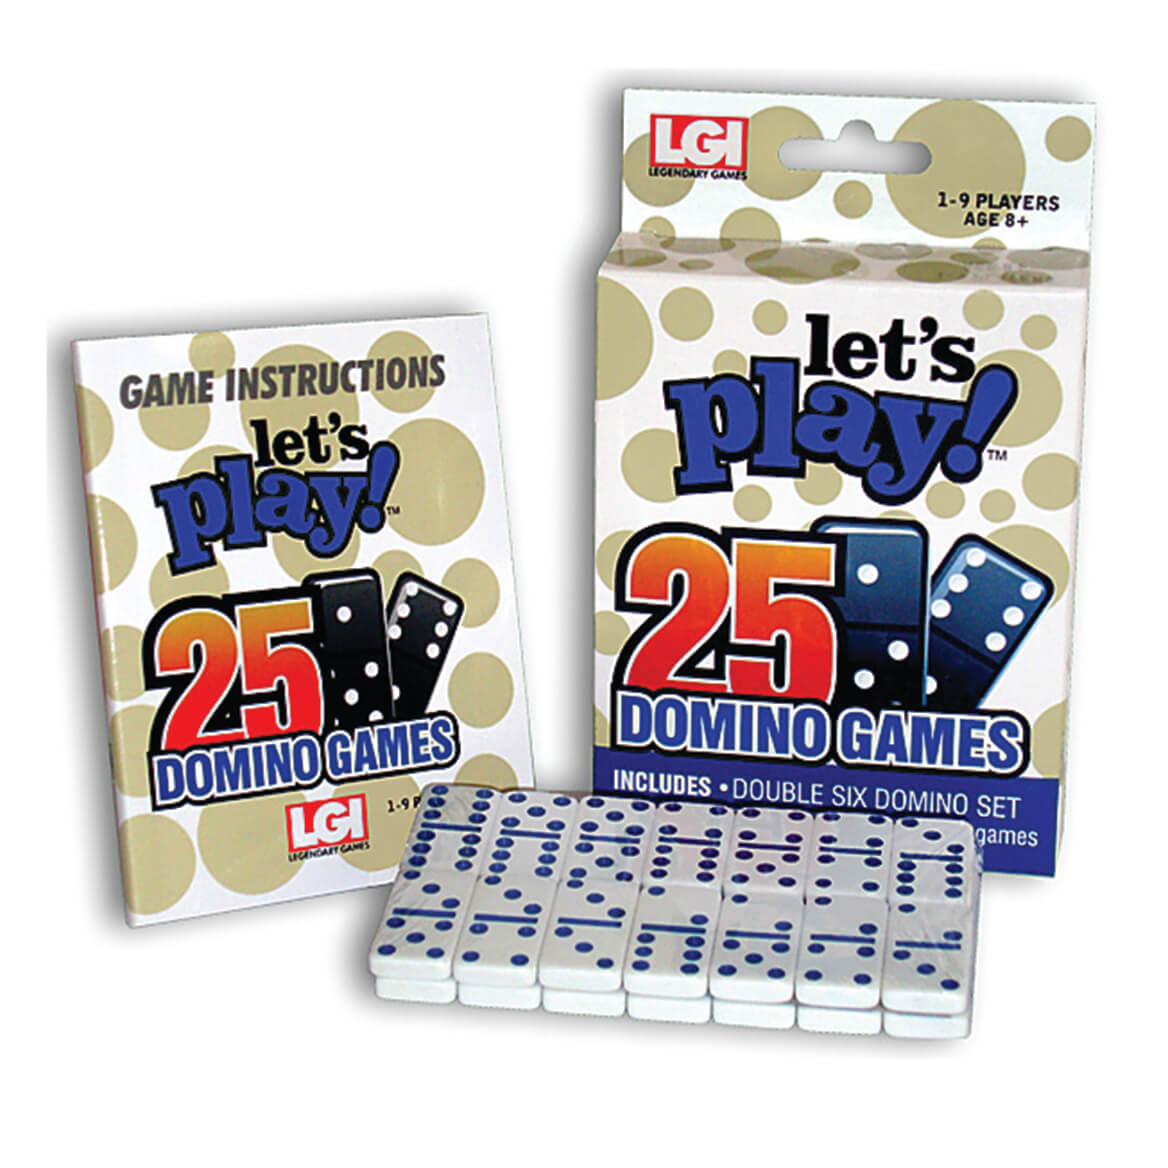 Let's Play™ 25 Domino Games